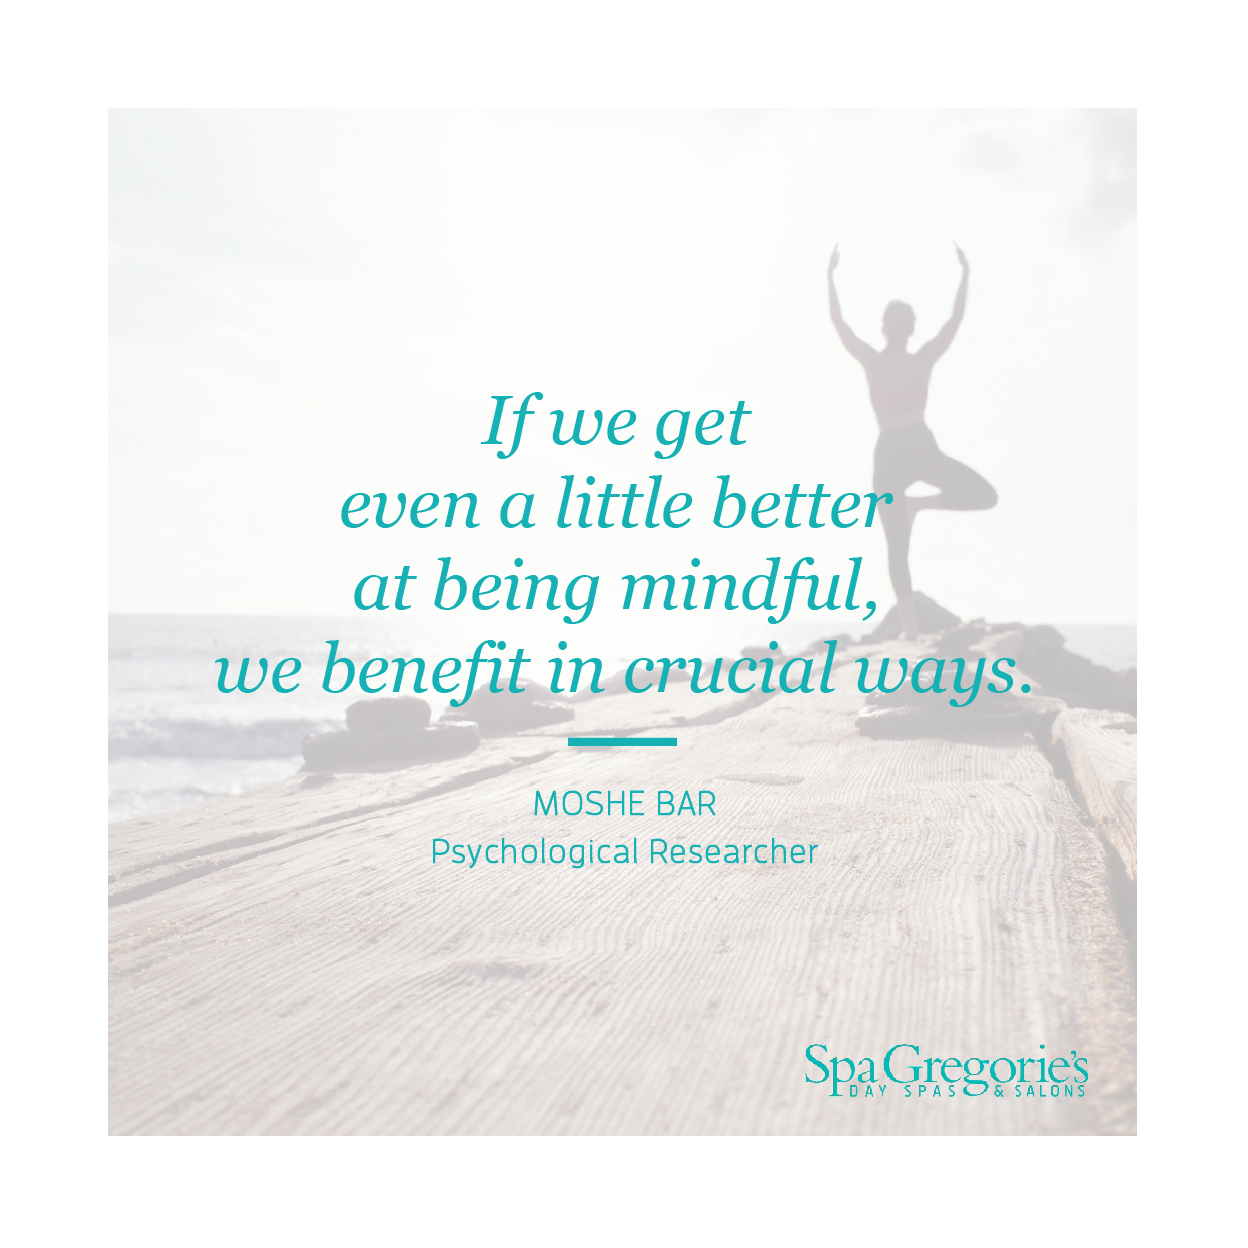 "Picture with woman doing yoga by the beach with text over it that says ""If we get even a little better at being mindful, we benefit in crucial ways,"" a quote from Moshe Bar, a psychological researcher."